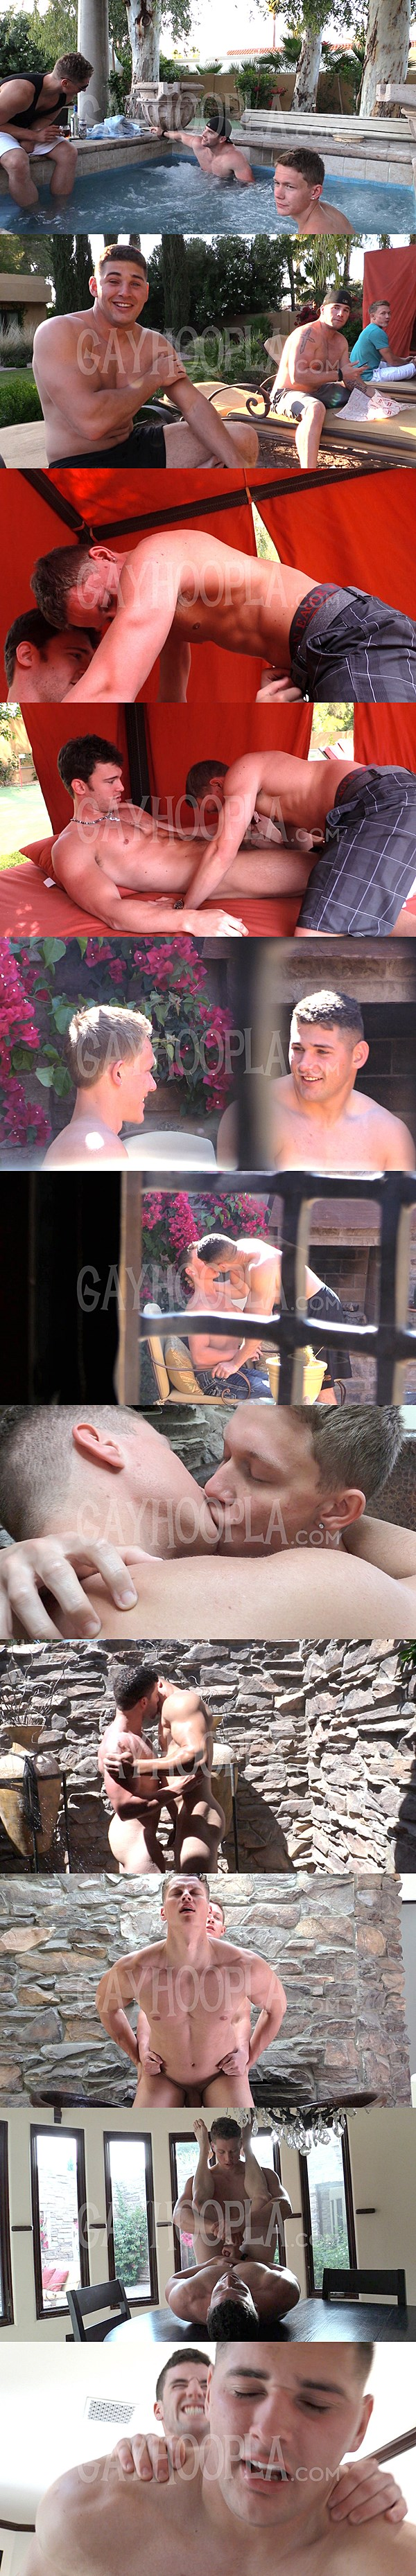 Four hot athletic jocks will have their bottoming debuts at Gayhoopla 01